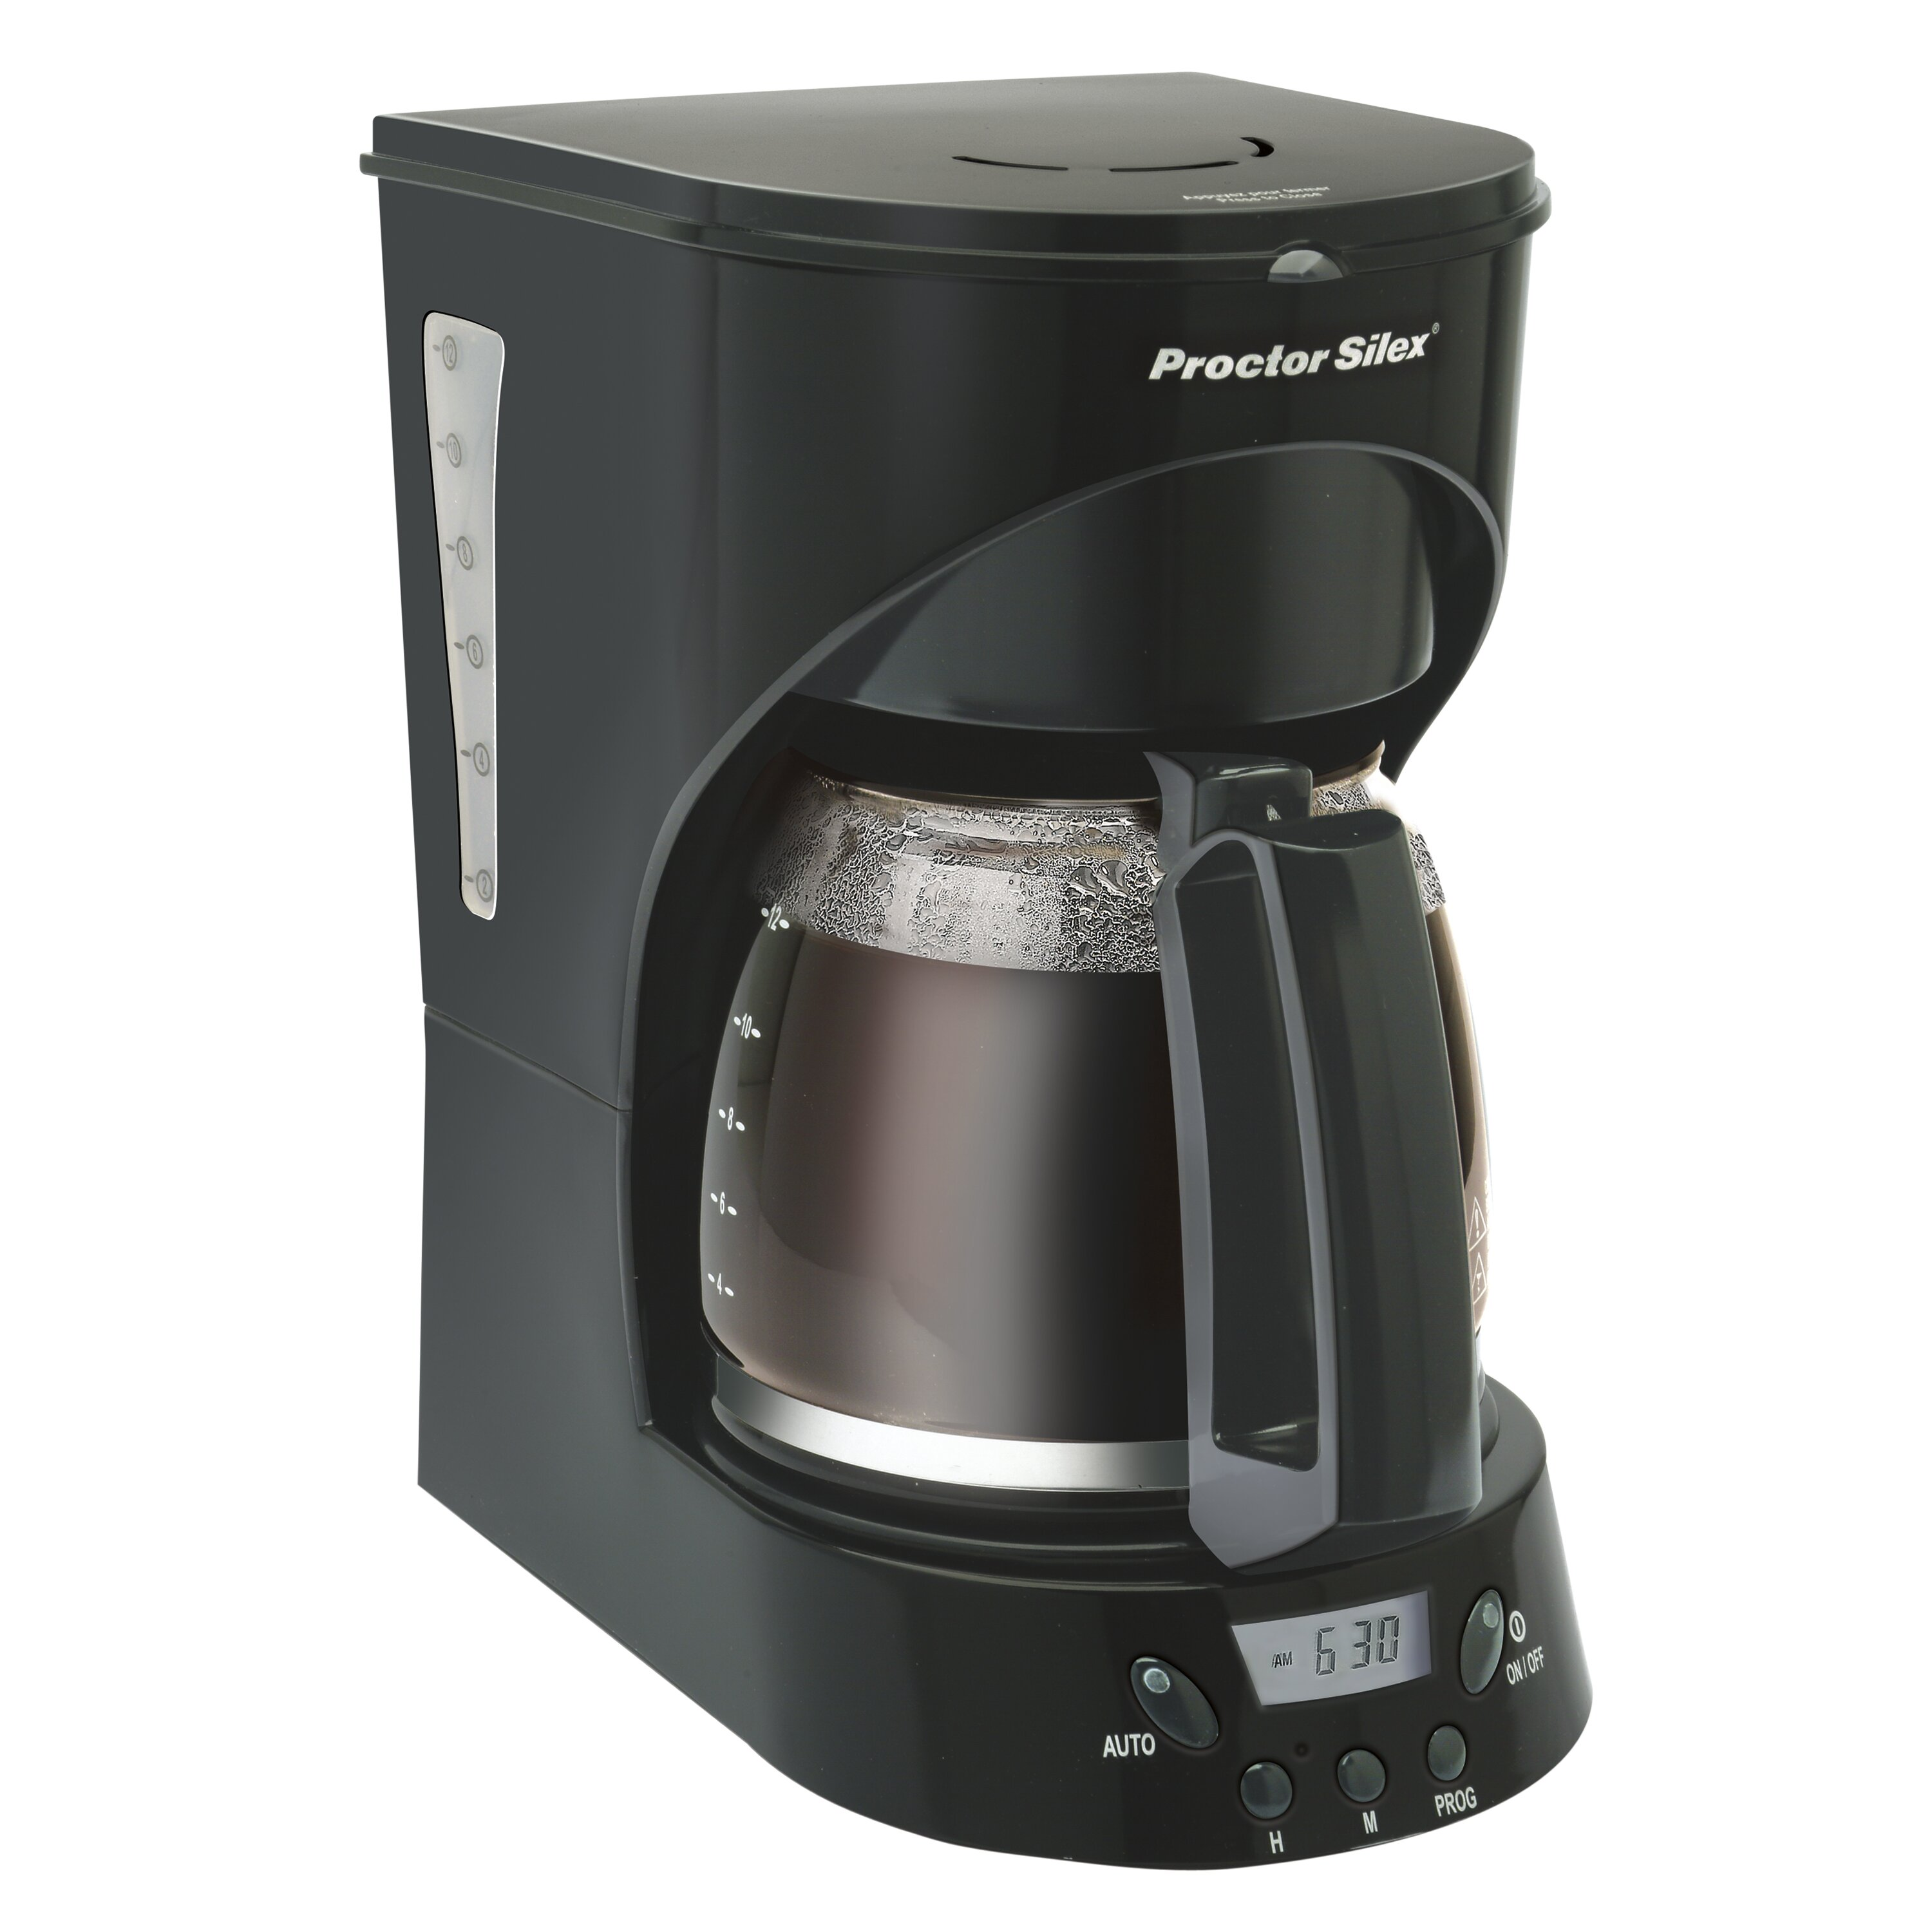 Proctor silex programmable 12 cup coffee maker reviews Coffee maker brands